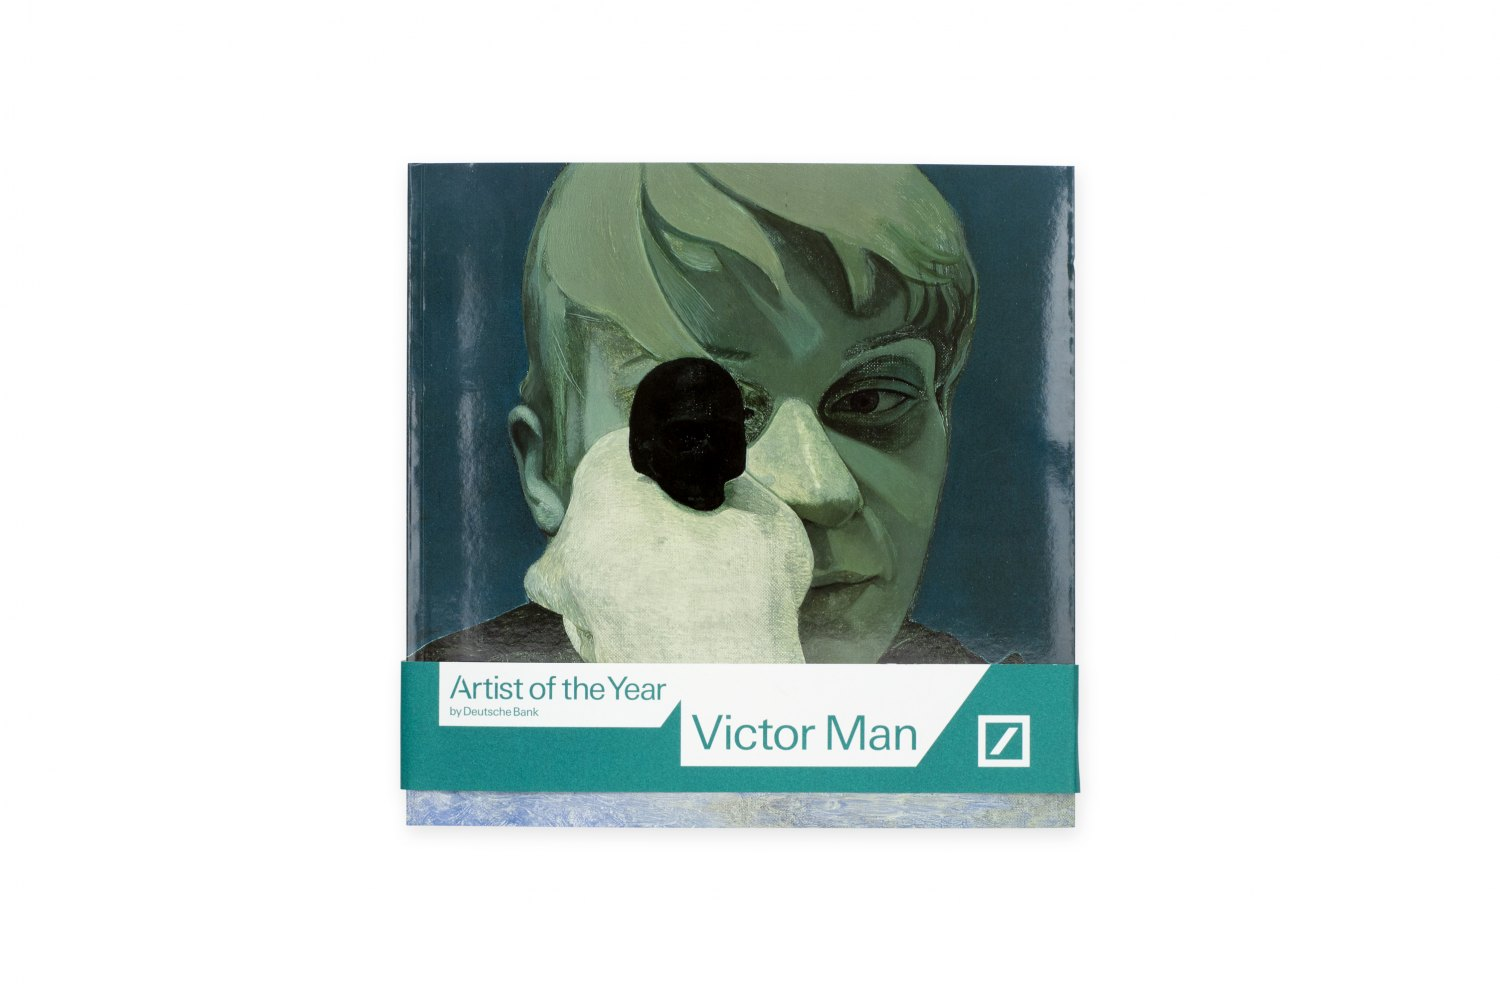 Victor Man, Szindbád – Artist of the Year 2014  Catalogue, Deutsche Bank Kunsthalle, Berlin 2014/15, 195 p. ISBN 978-3-77573-806-4